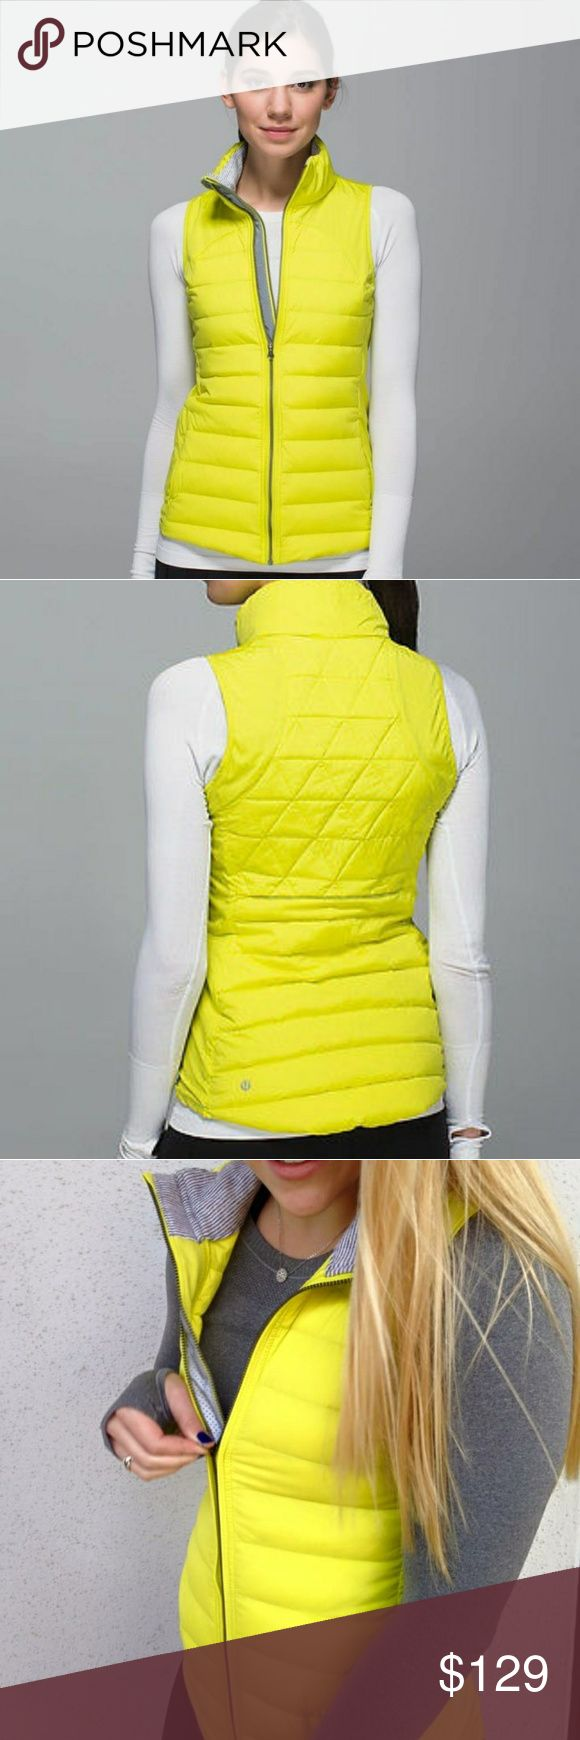 Goose down yellow quilted lululemon vest New condition lulu vest in bright Yellow! Filled with 800-fill-power goose down and PrimaLoft insulation. Water and wind resistant Stretch Glyde fabric. *PrimaLoft insulation. lululemon athletica Jackets & Coats Vests